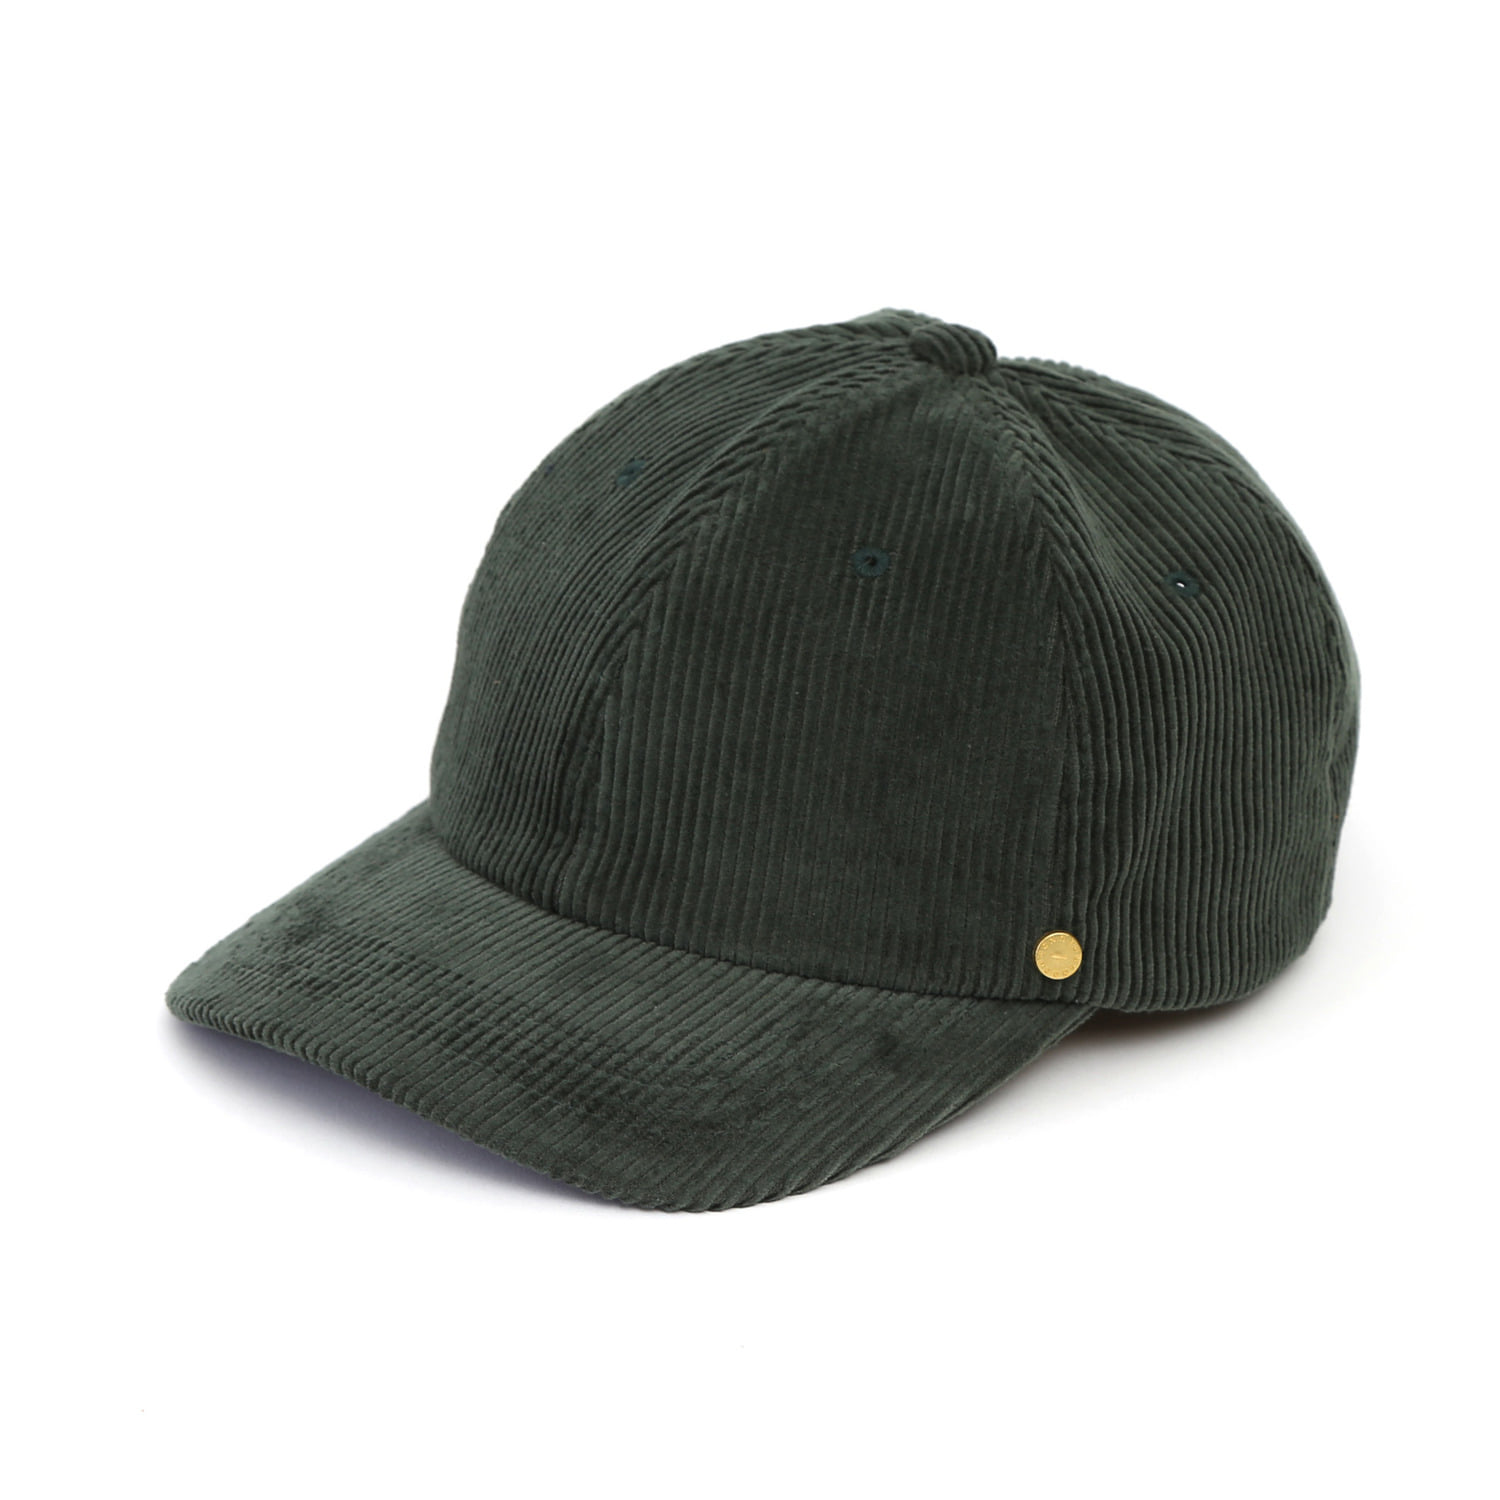 6PANNEL BALL CAP / CORDUROY / FOREST